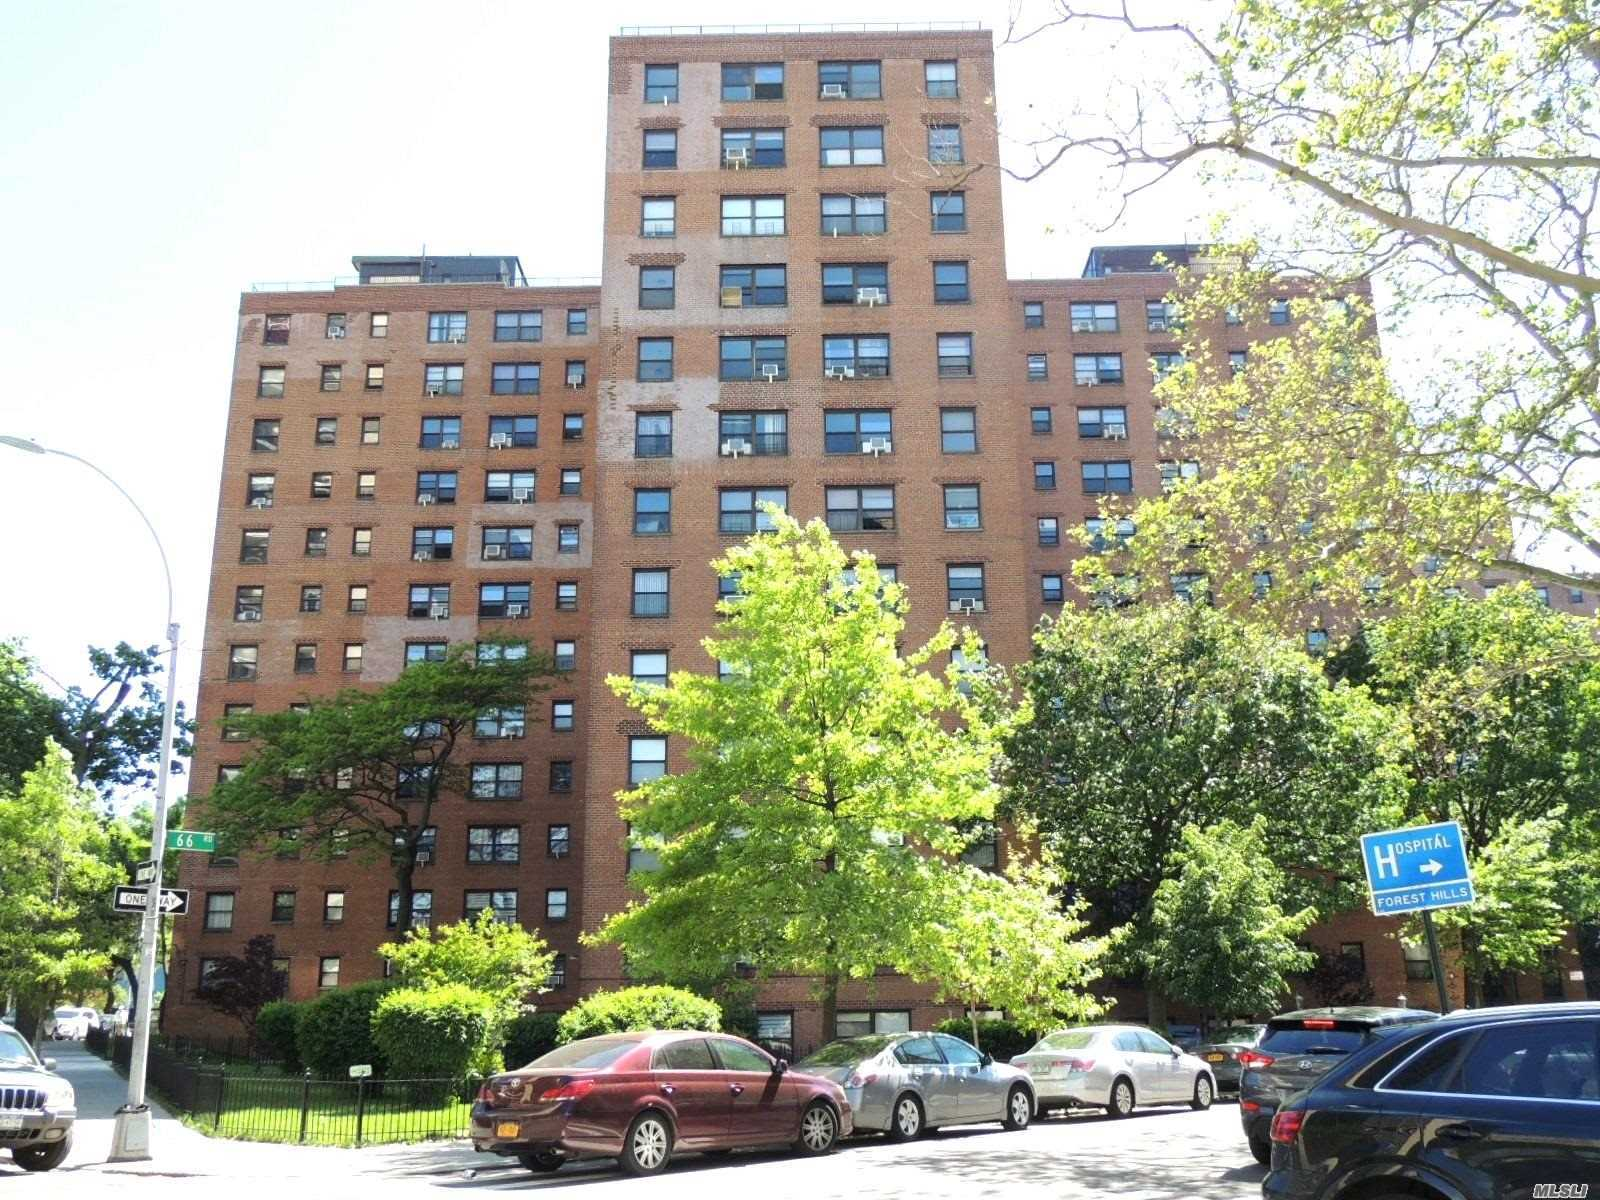 Spacious Jr4/2 Bedroom in very well managed coop complex The Howard. Pet friendly Fireproof Buildings situated on the boarder of Rego Park and Forest Hills, within just steps to R and M trains to Manhattan, local buses and all types of shopping and houses of worship. Building Features: Shared Laundry Room in The Lobby Level, Sublet After 2 Years Indefinitely with Board Approval. No Flip Tax, No Current Assessment. Available Indoor/Outdoor Parking